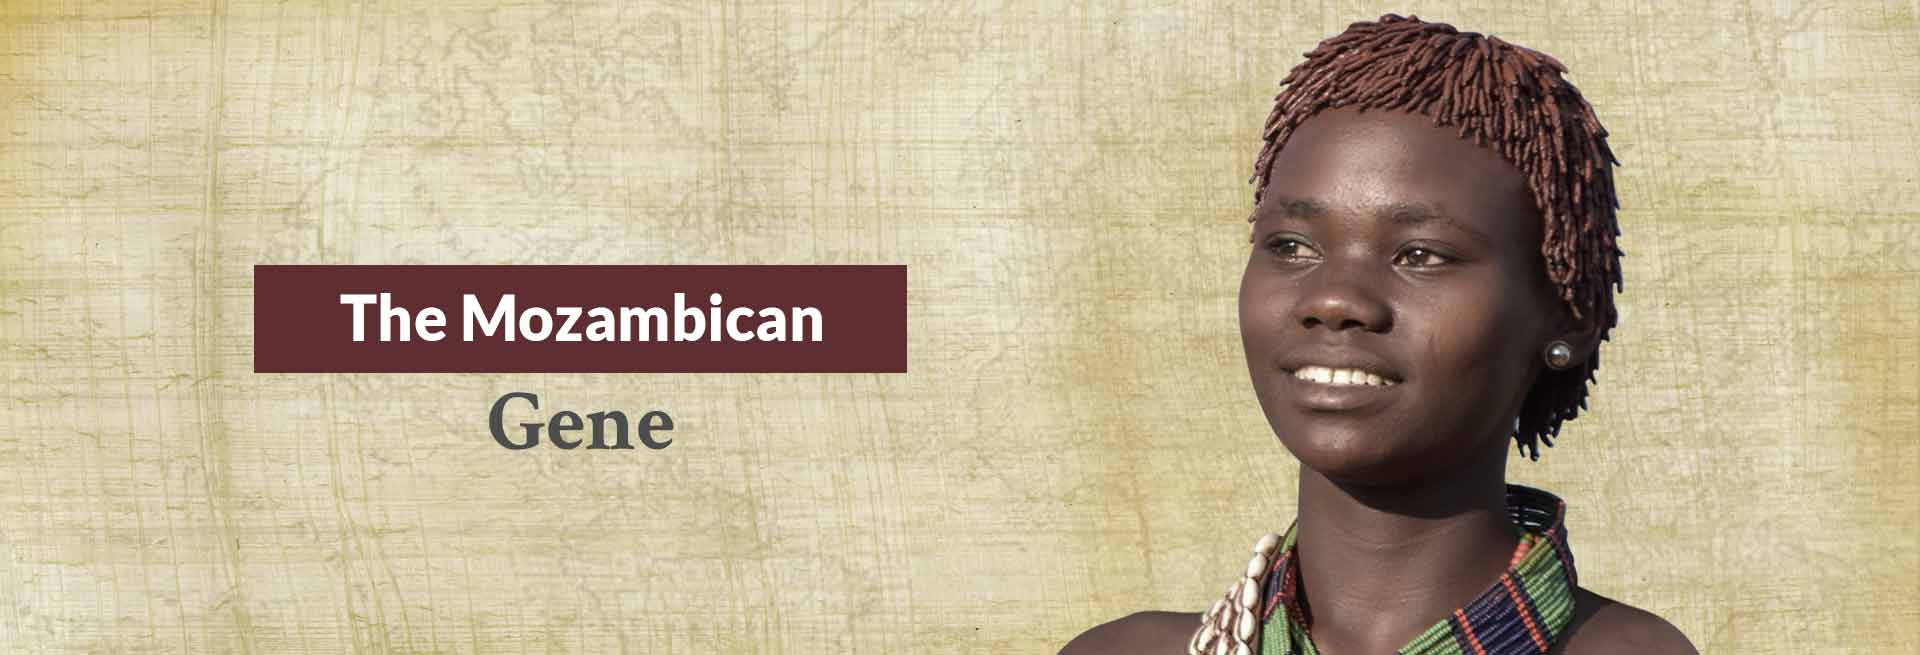 The Mozambican Gene Banner